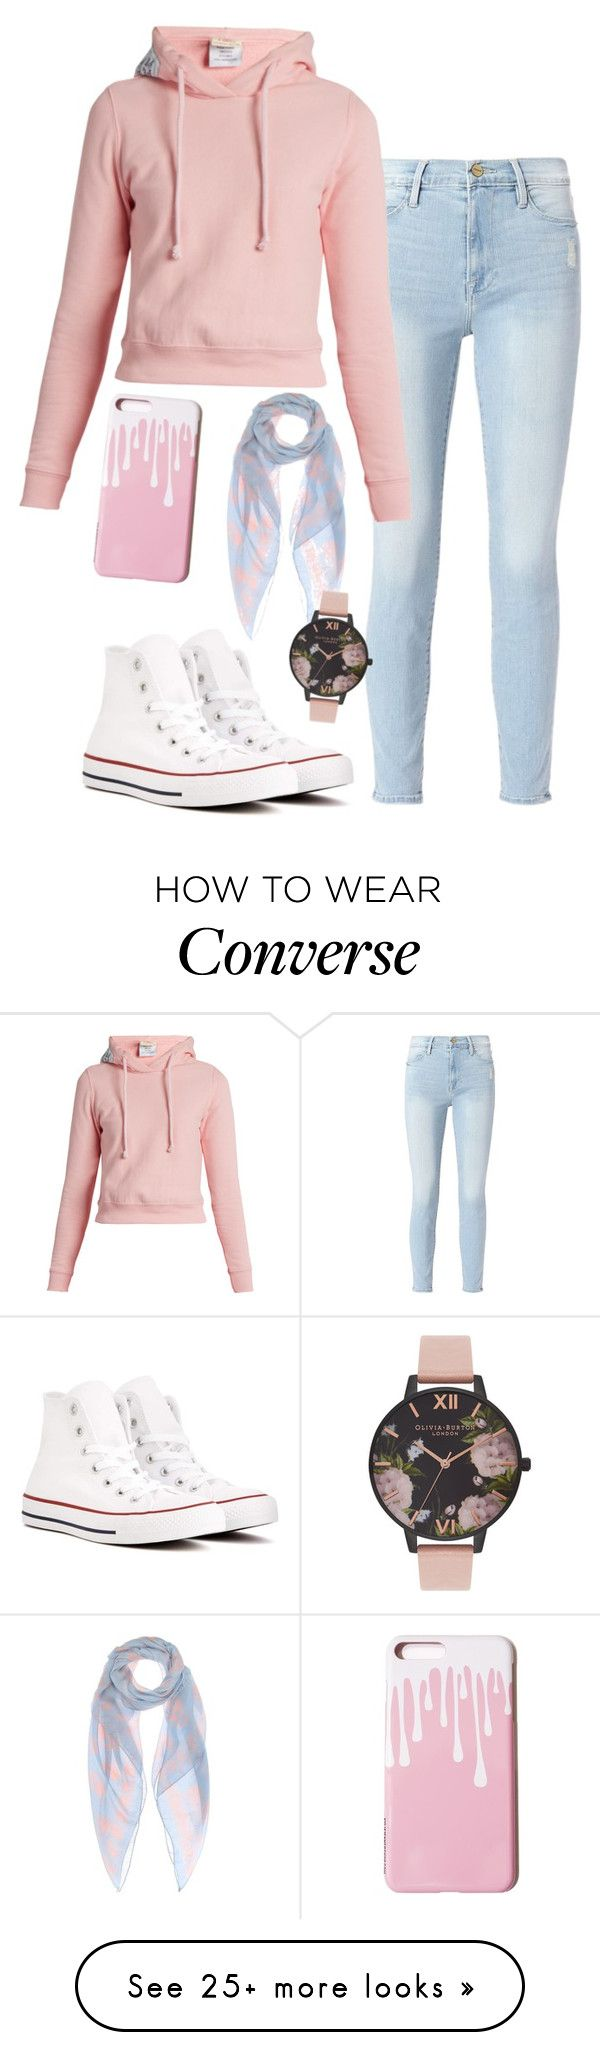 """Casual pink white and blue"" by meta009 on Polyvore featuring Converse, Frame, Vetements, Alexander McQueen and Olivia Burton"